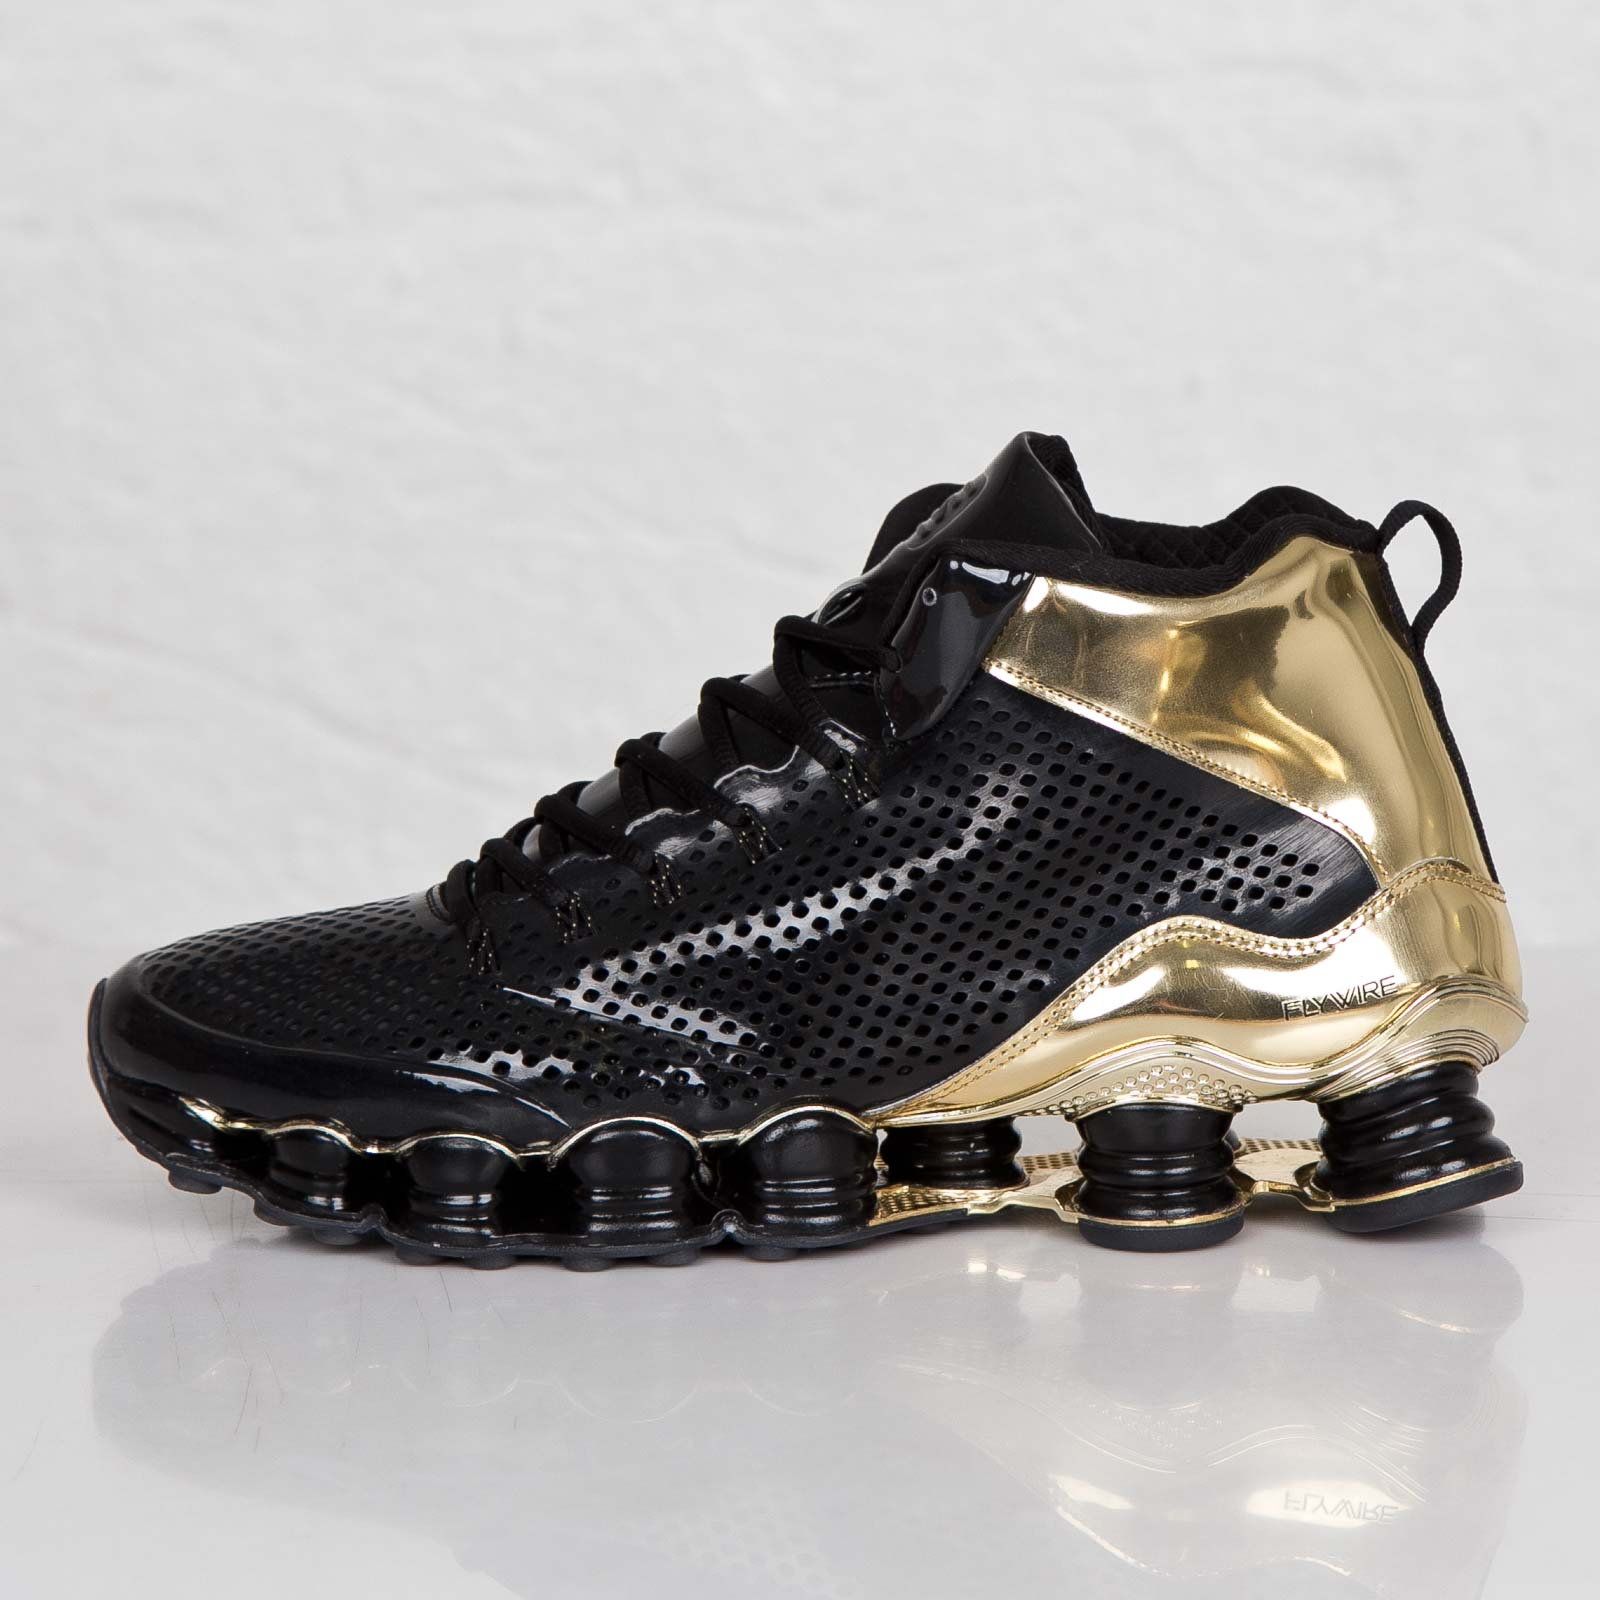 newest collection 3be9a 212fe Nike Shox TLX Mid SP - 677737-002 - Sneakersnstuff ...